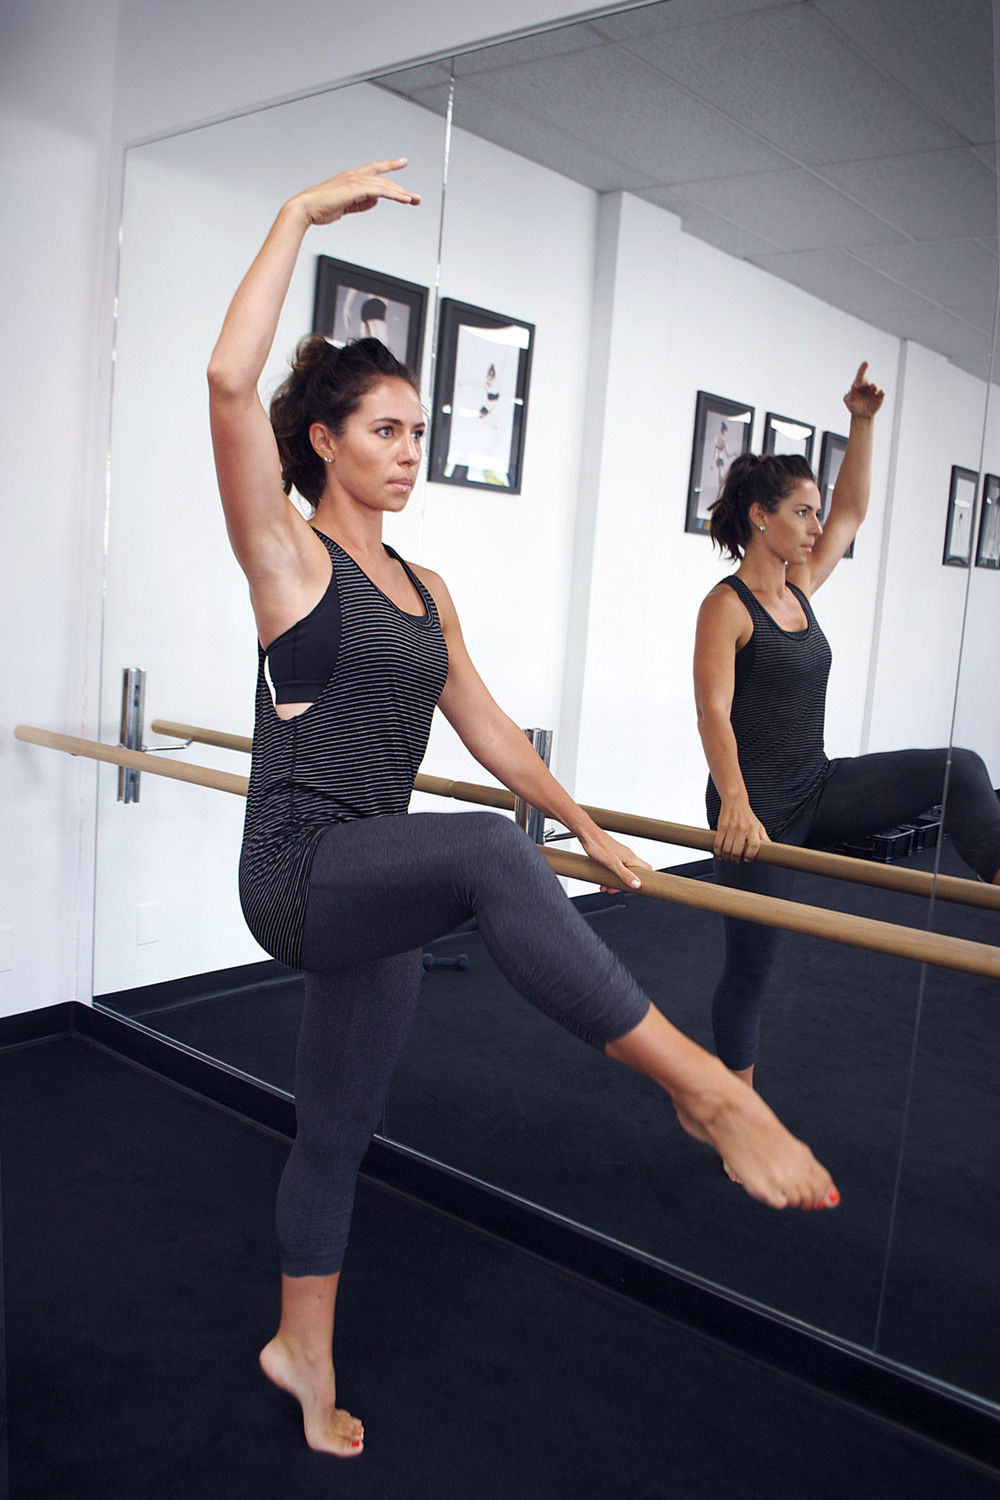 cardio barre workout